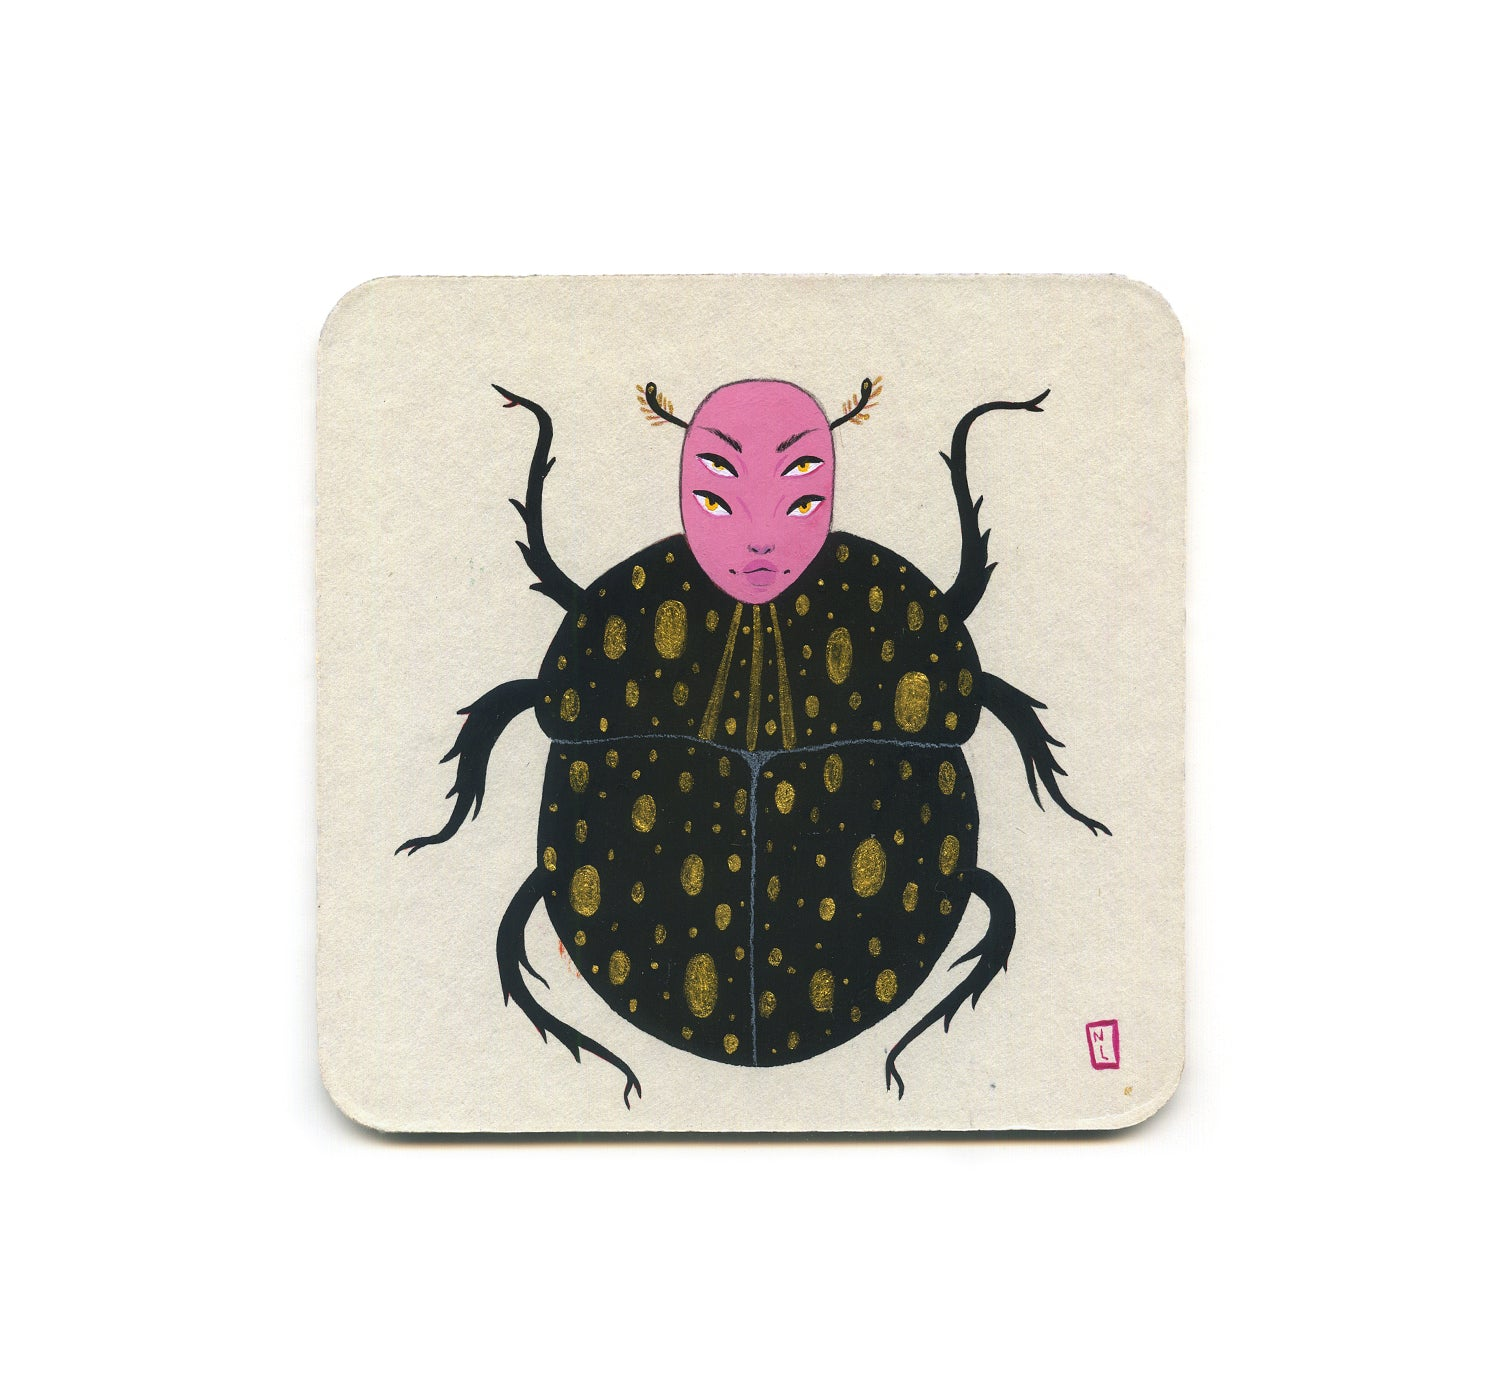 Natasha Lillipore - 1 Coaster